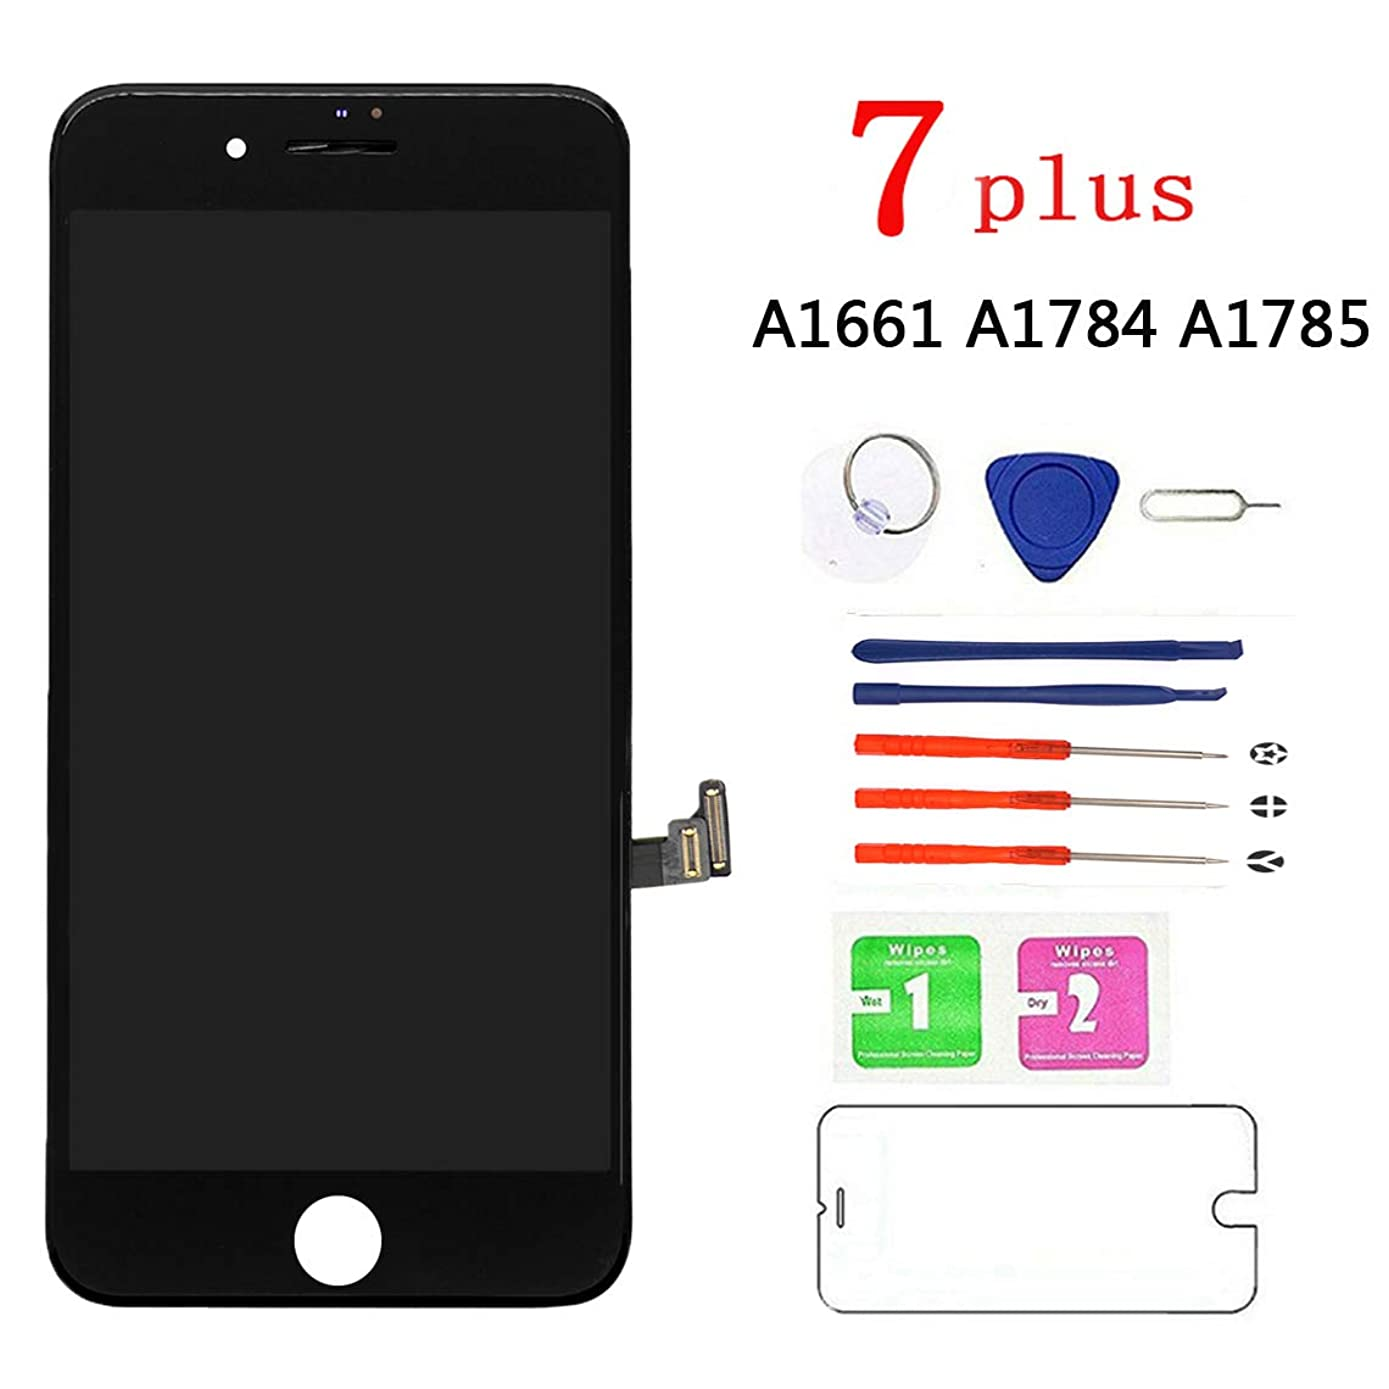 Screen Replacement for iPhone7 Plus Black, LCD Display and Touch Screen Digitizer Replacement with Repair Tools and Screen Protector with A1661 A1784 A1785 All Version